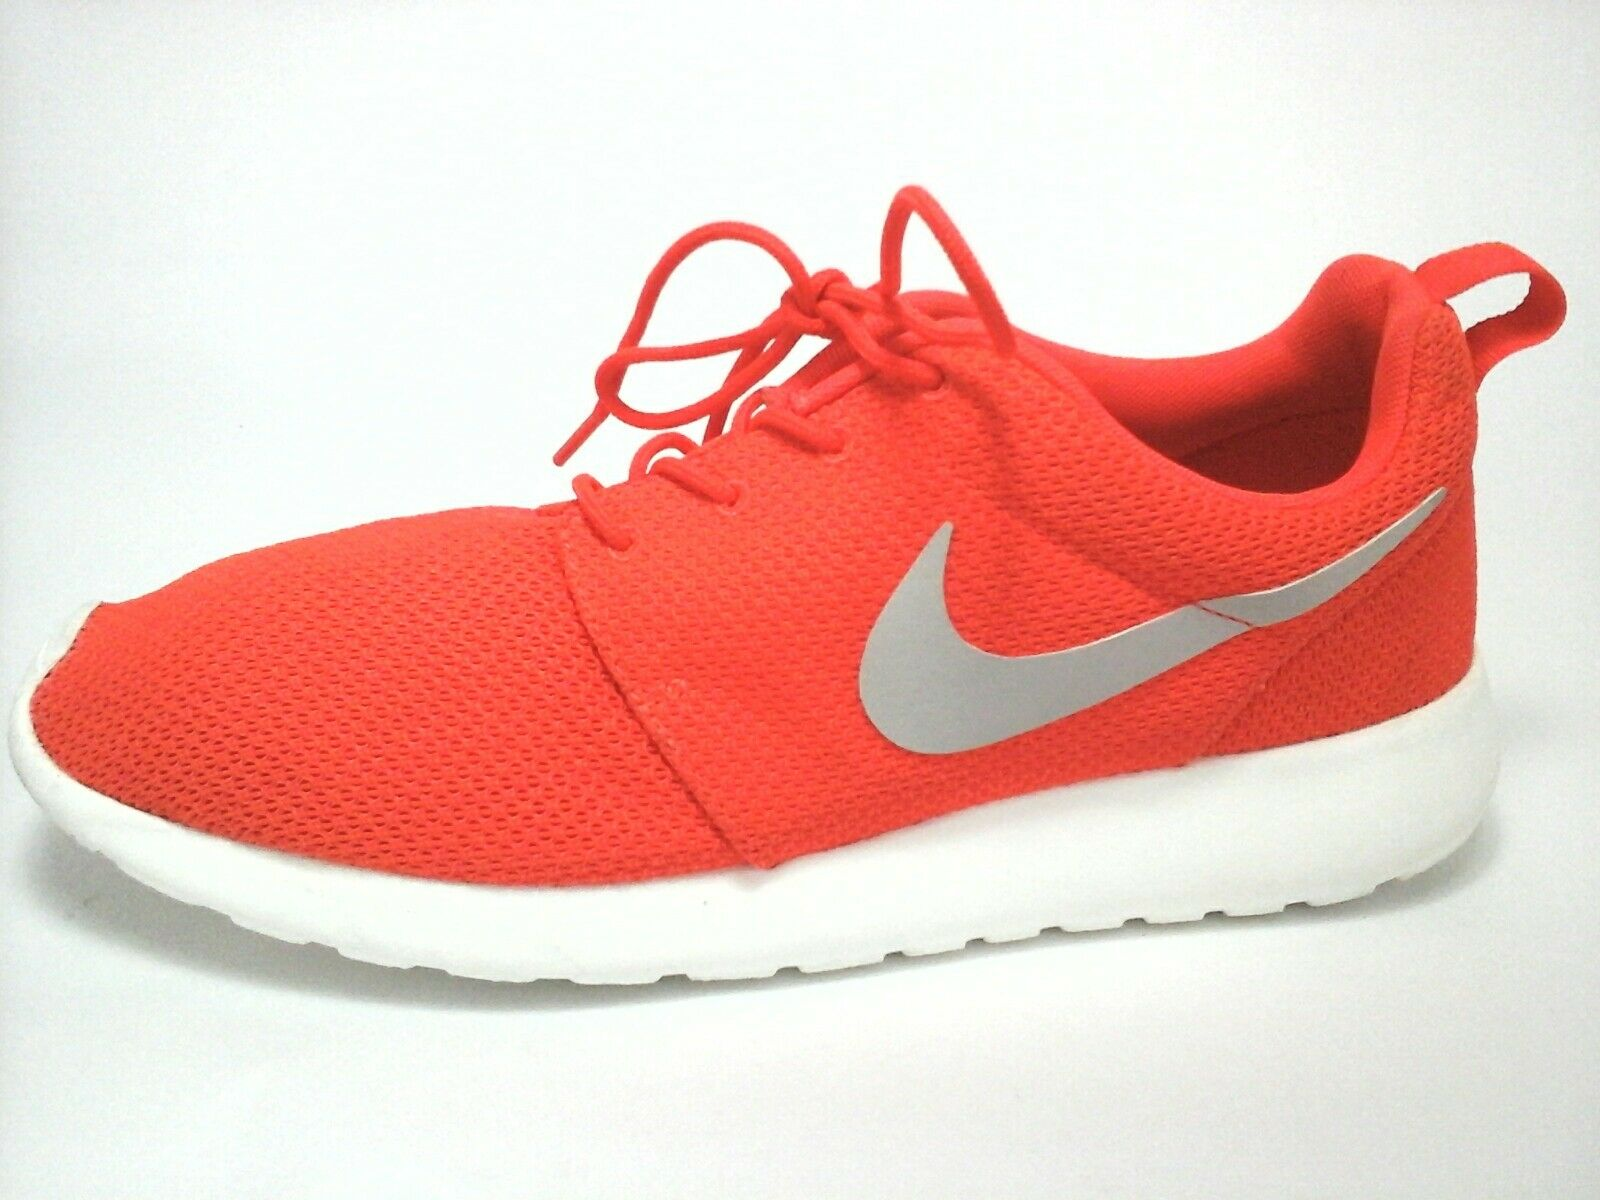 NIKE Chaussures KNIT Athletic Running ORANGE Baskets Hommes  US 11 EU 45  Hommes 110 RARE dee6bd